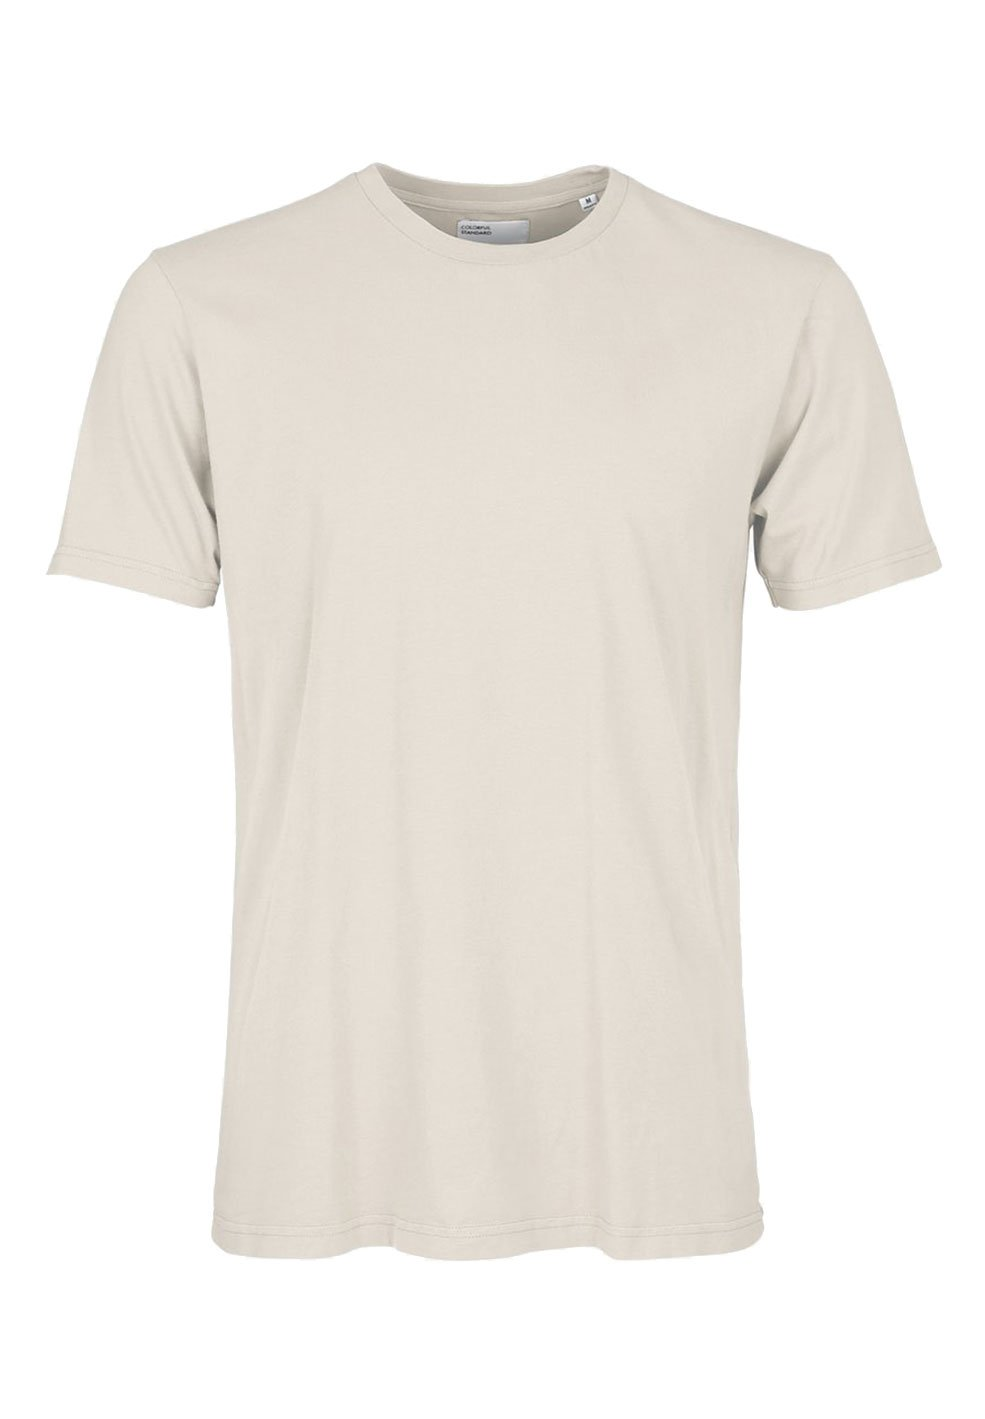 Colorful Standard COLORFUL STANDARD classic organic cotton tee shirt round neck ivory white (unisex)